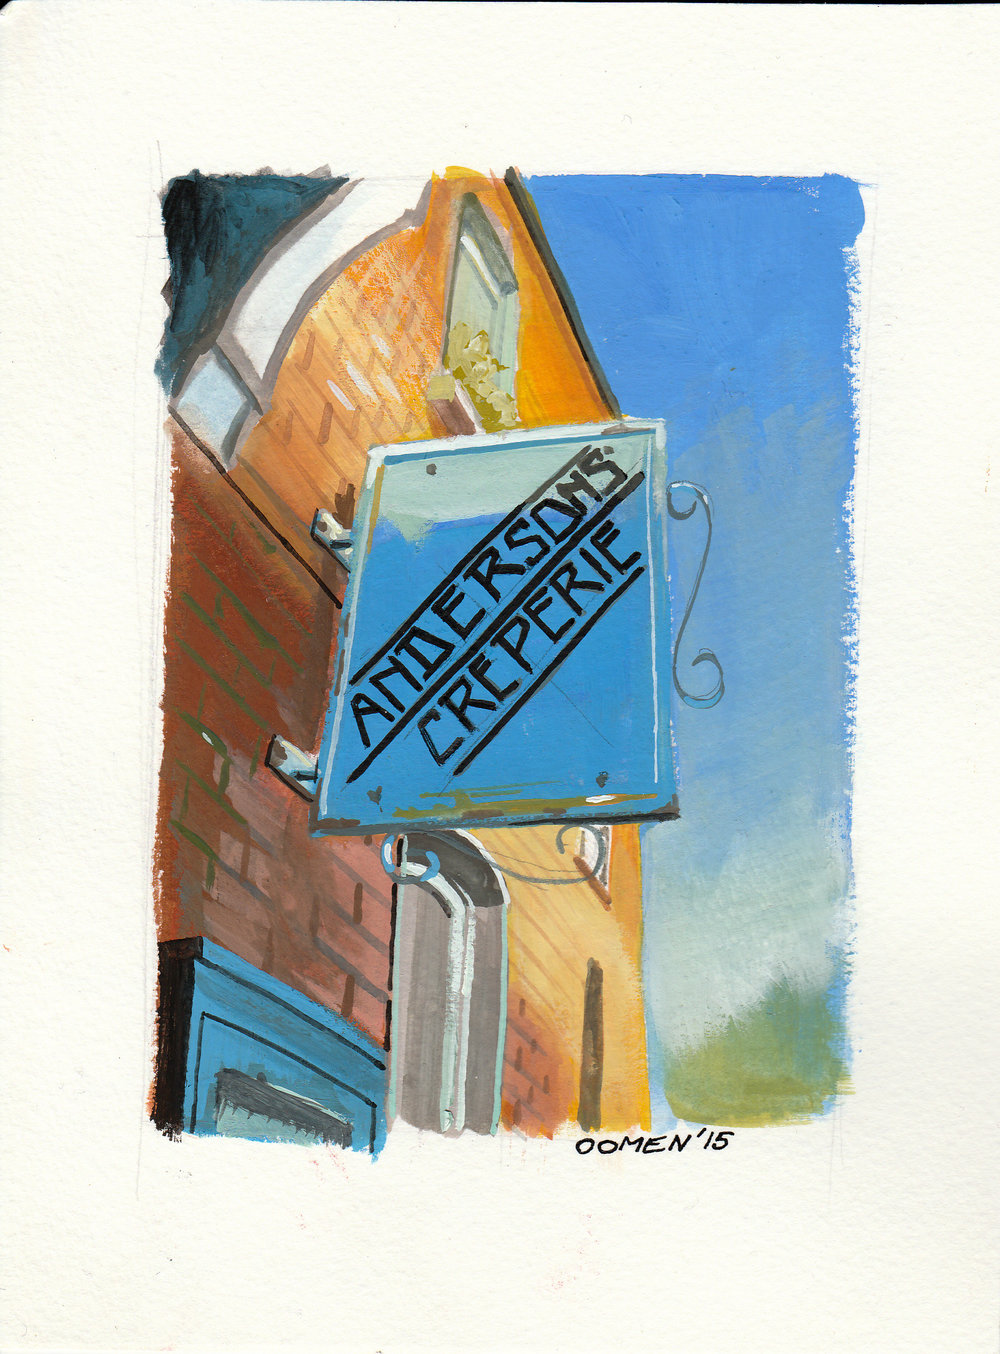 Just up the street from where we lived in Dublin there was a great creperie called Anderson's. One of Drumcondras best little gems, they serve delicious crepes and waffles with excellent coffee. I did this little painting and sent it back to my wife when she had gone back to work in Canada.